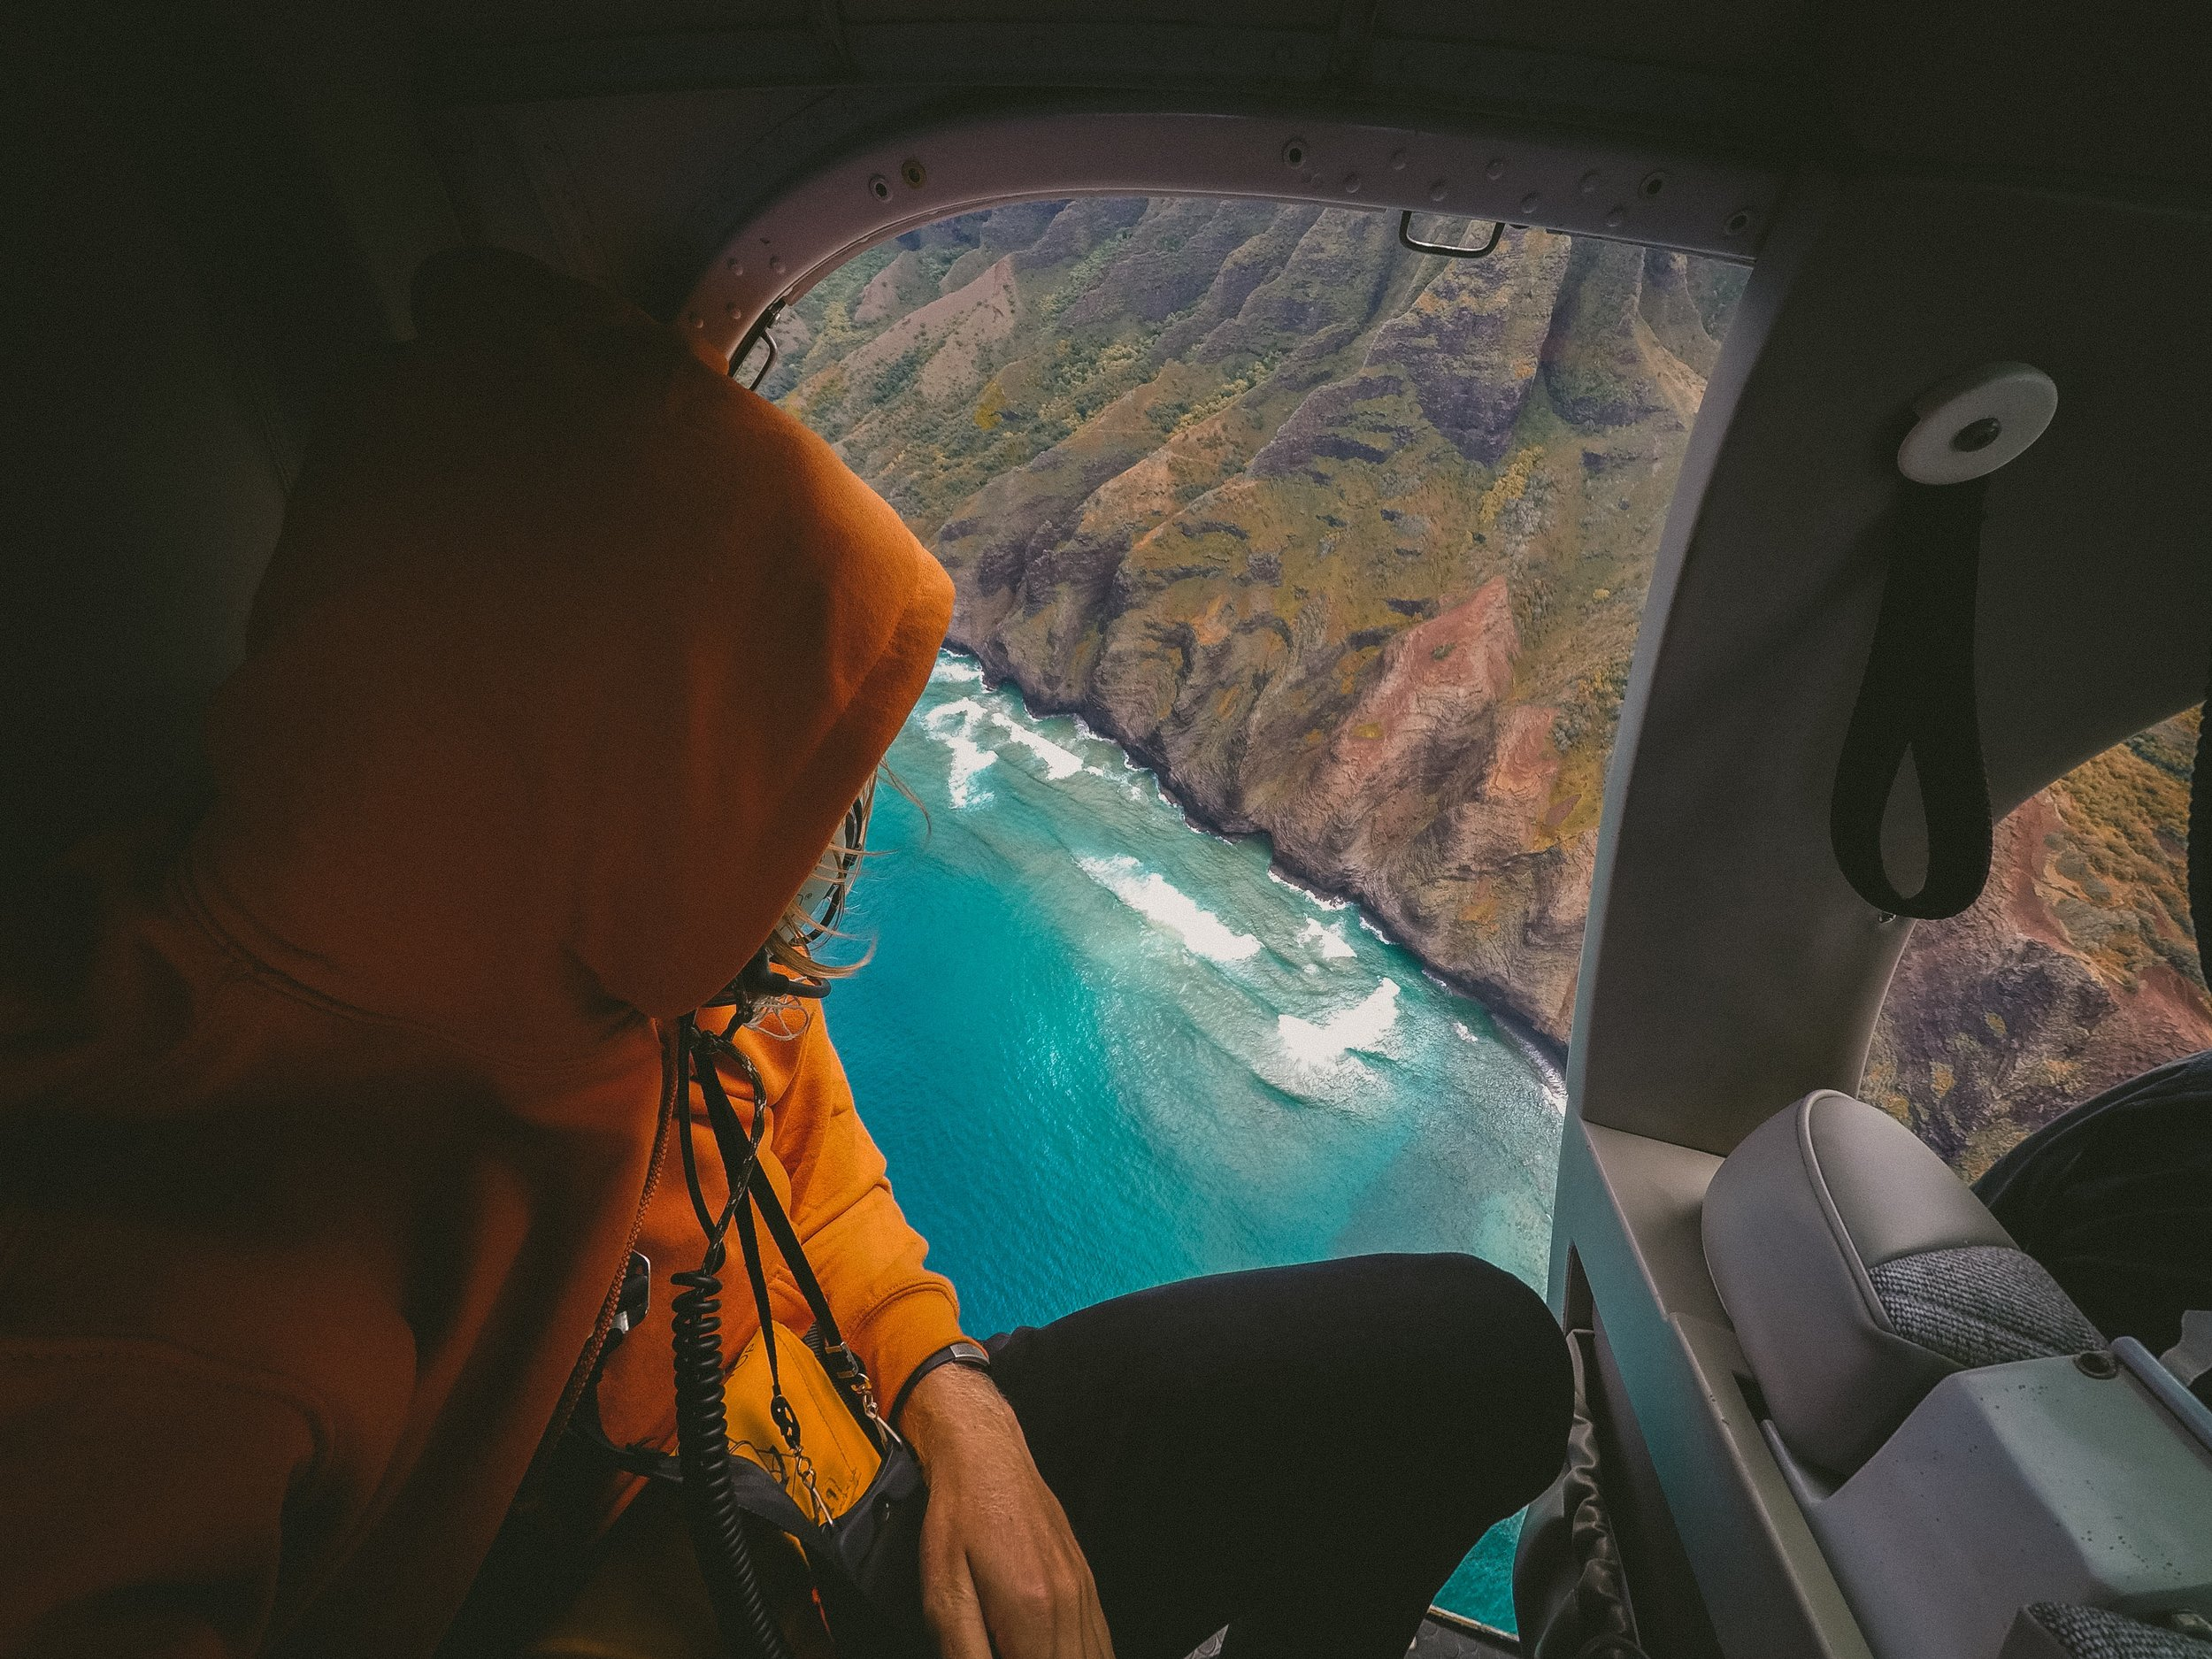 staring out the window of a helicopter at the sea and cliffside below